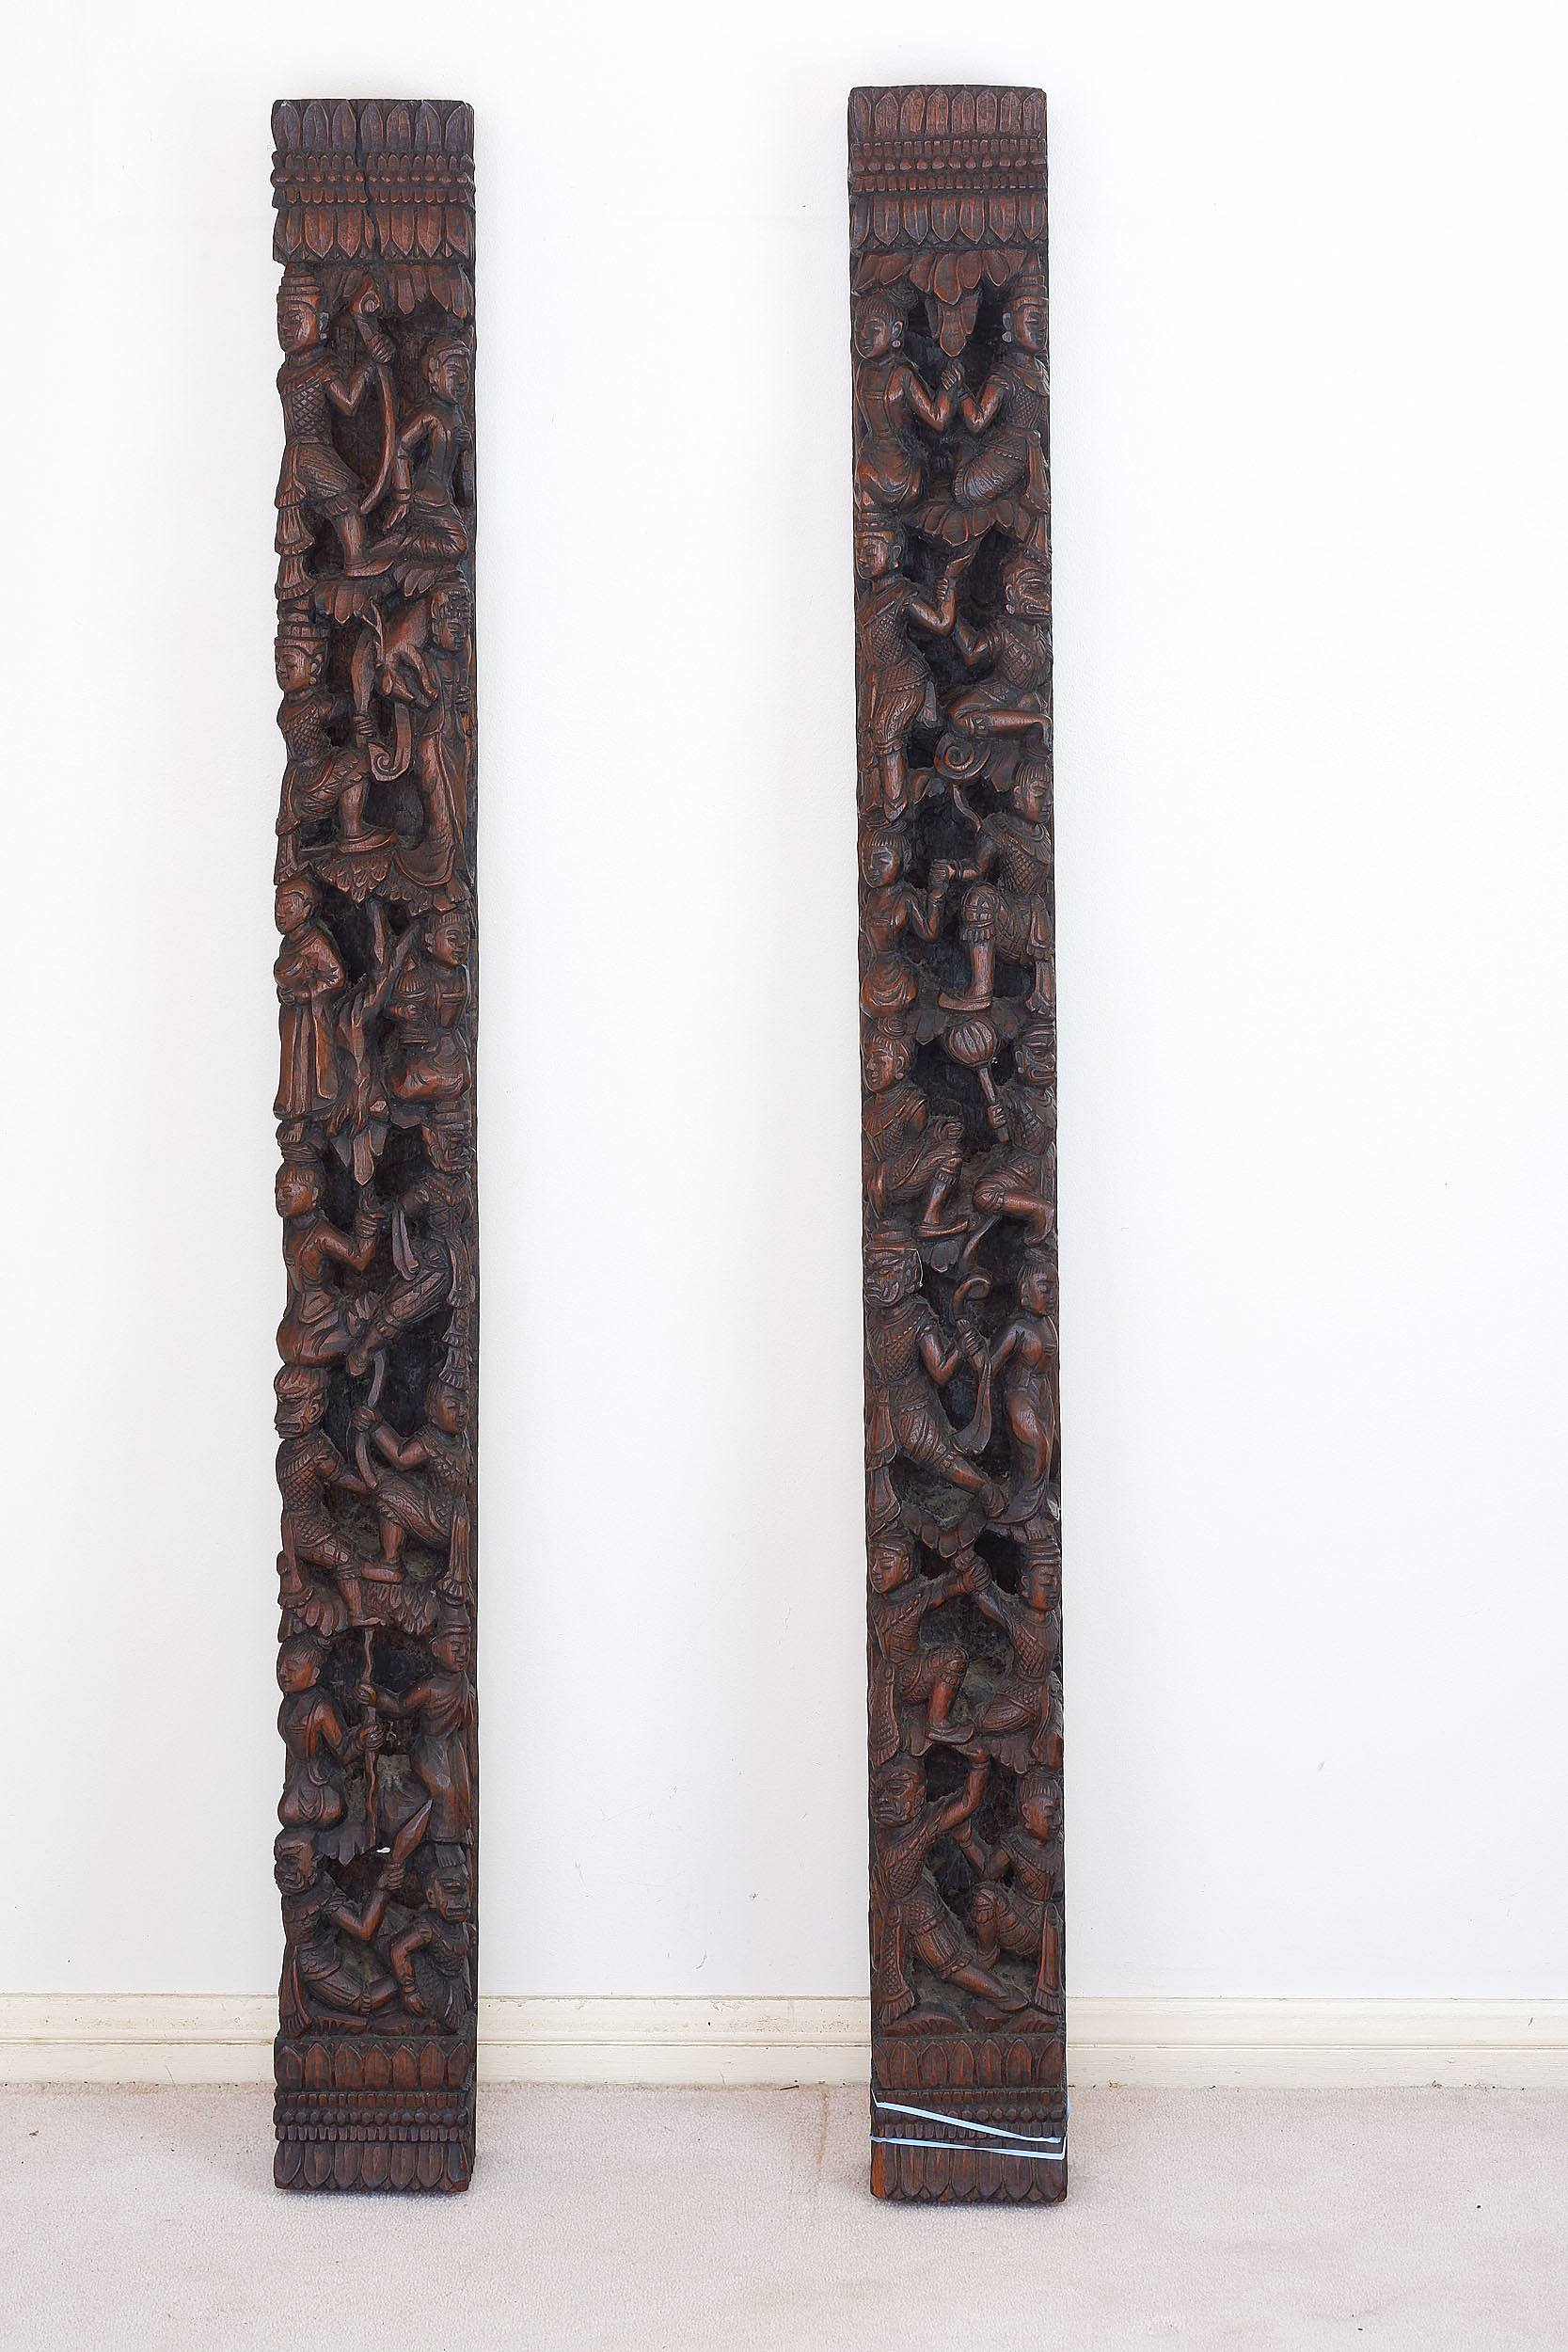 'Burmese Heavily Carved and Pierced Architectural Posts '